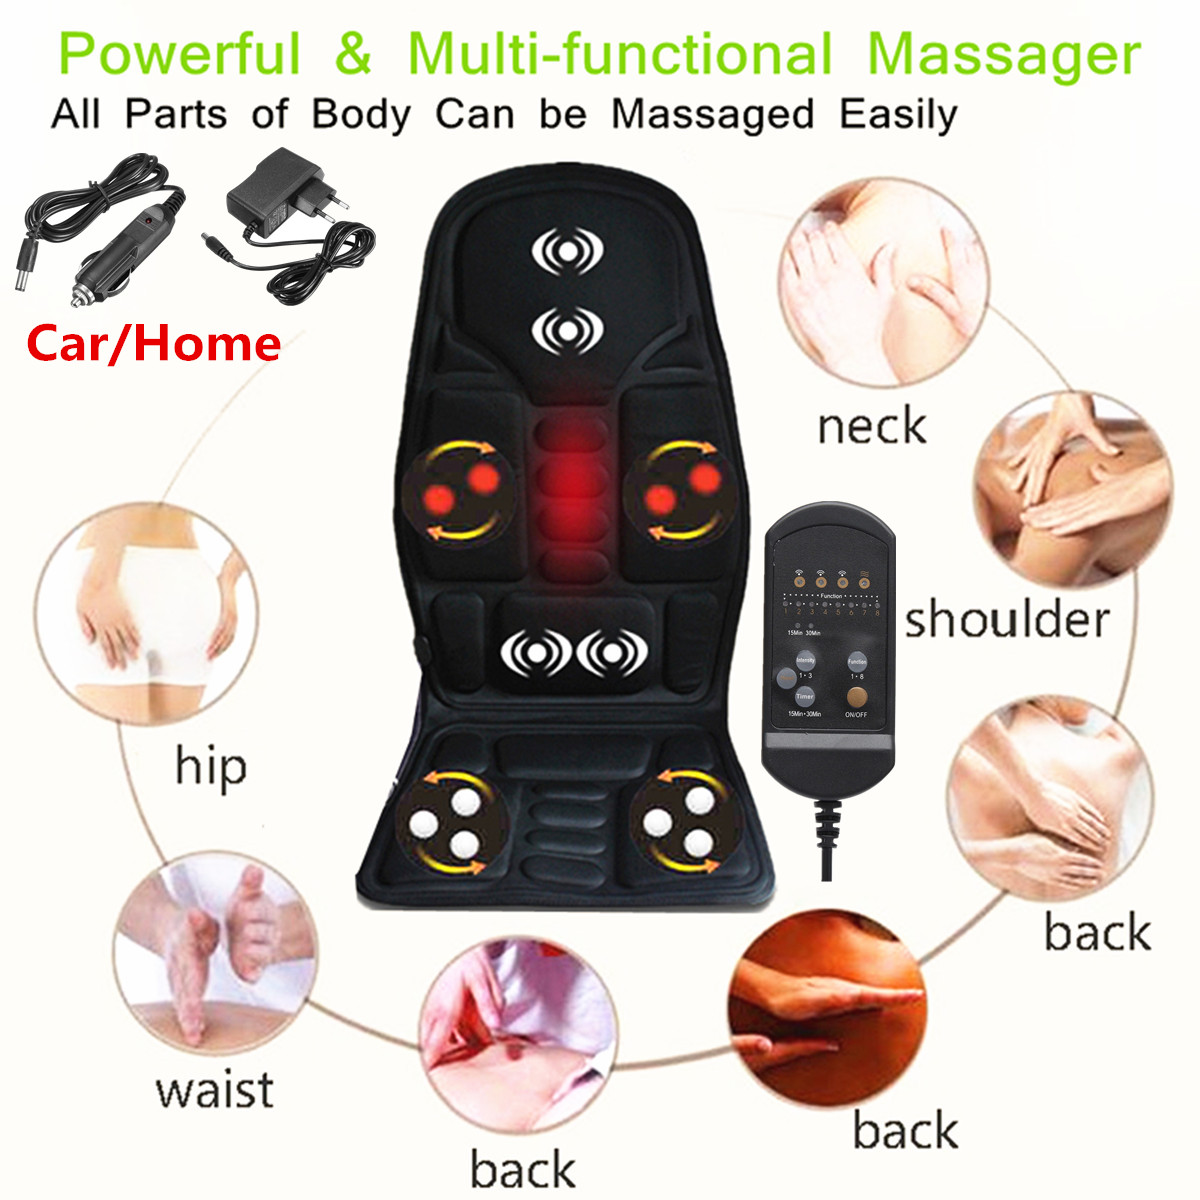 8 Mode 3 Intensity Car Chair Heat Full Body Infrared Massager Mat Pad Seat Cushion for Body Relief,Upper Lower Back, Hips, Lumbar Legs with Heat Therapy For Car Household Office